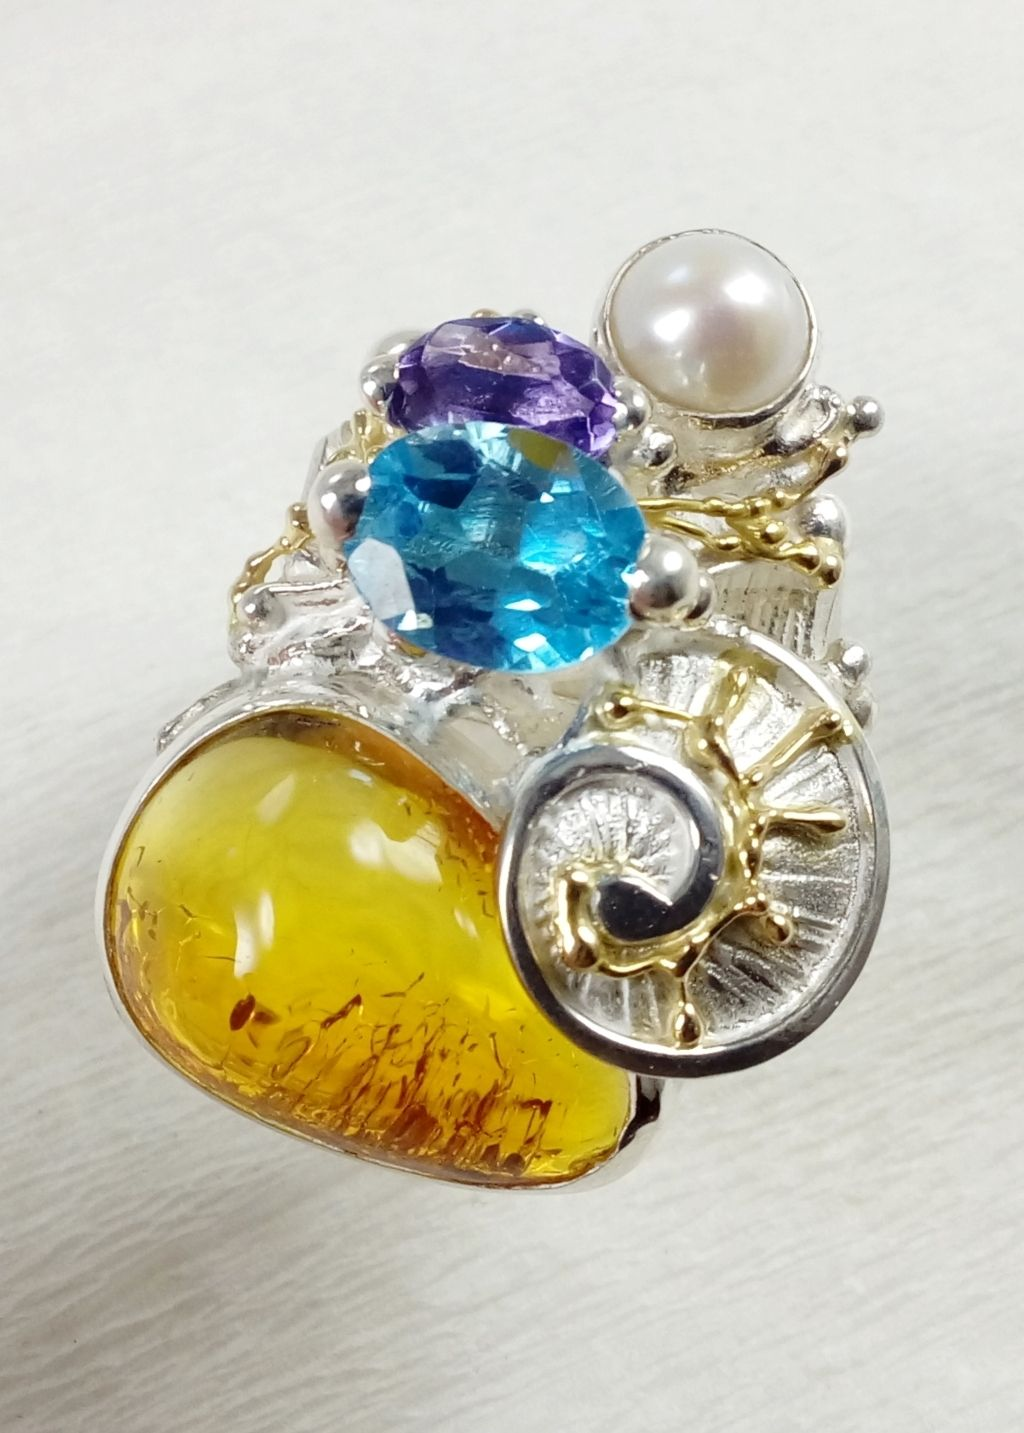 gregory pyra piro square ring 4822, craft gallery jewellery for sale, fine craft gallery handcrafted ring for sale, sterling silver and 14 karat gold ring, ring with amethyst and blue topaz, ring with blue topaz and amber, ring with amethyst and amber, one of a kind handcrafted ring, original handcrafted jewellery